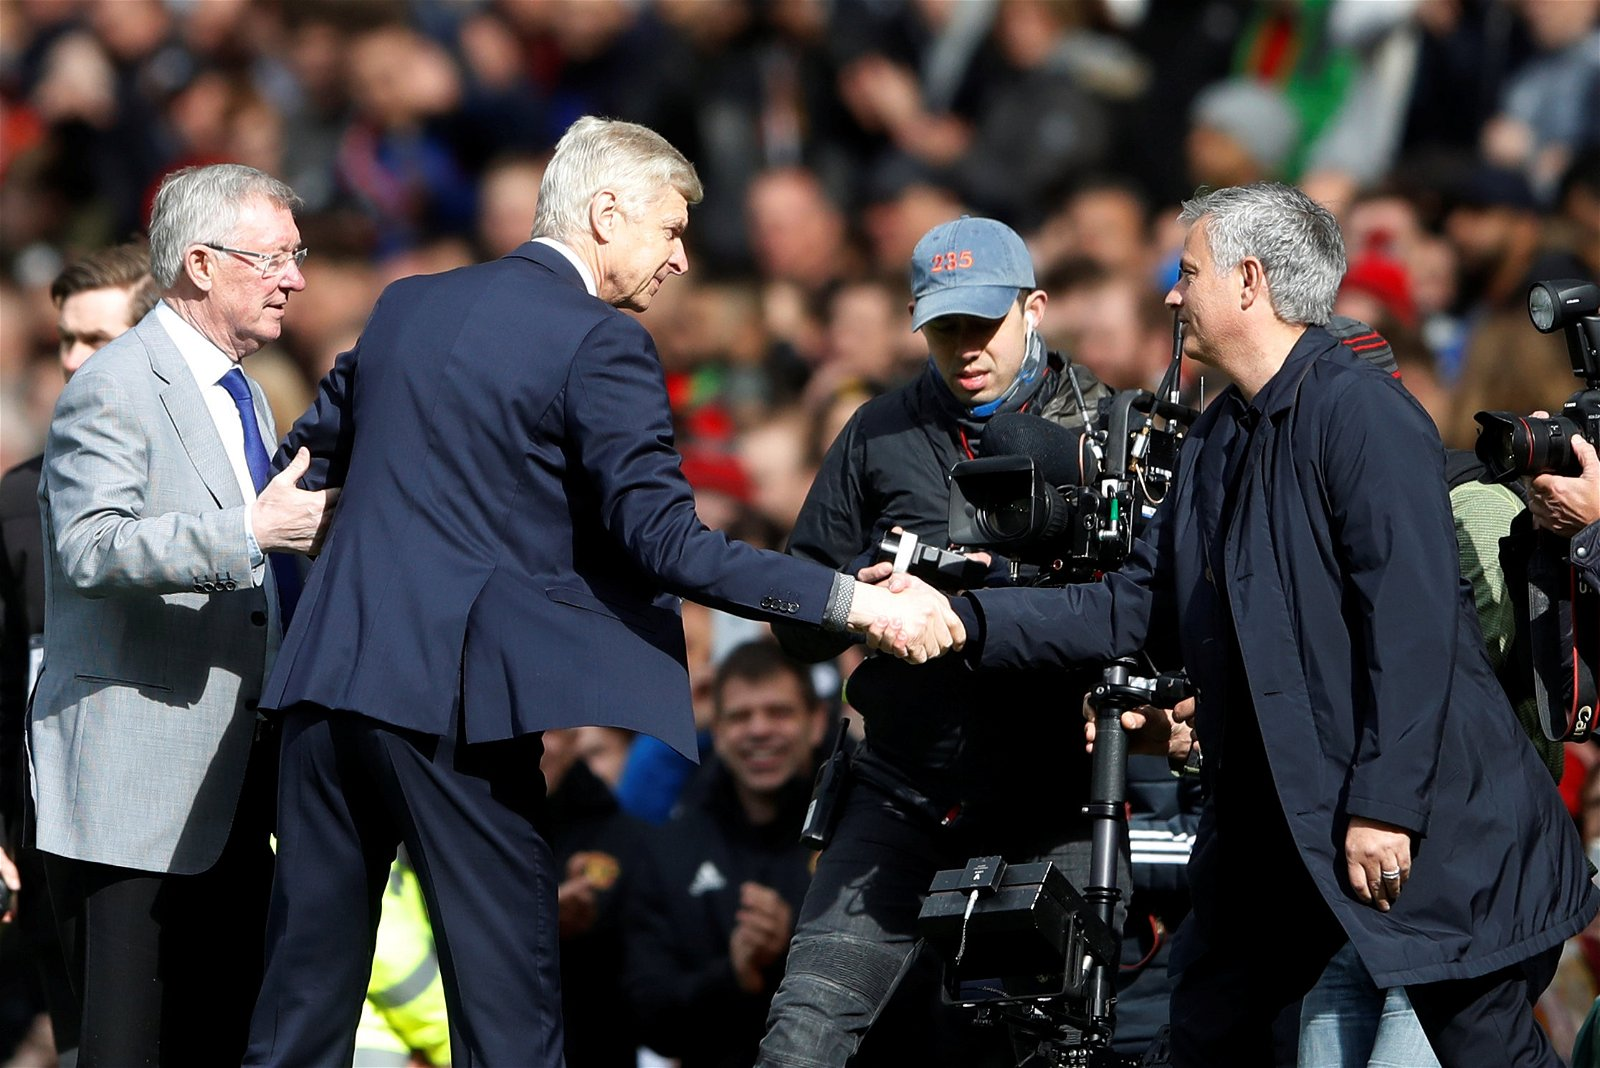 Sir Alex Ferguson presents Arsene Wenger with a gift at Old Trafford